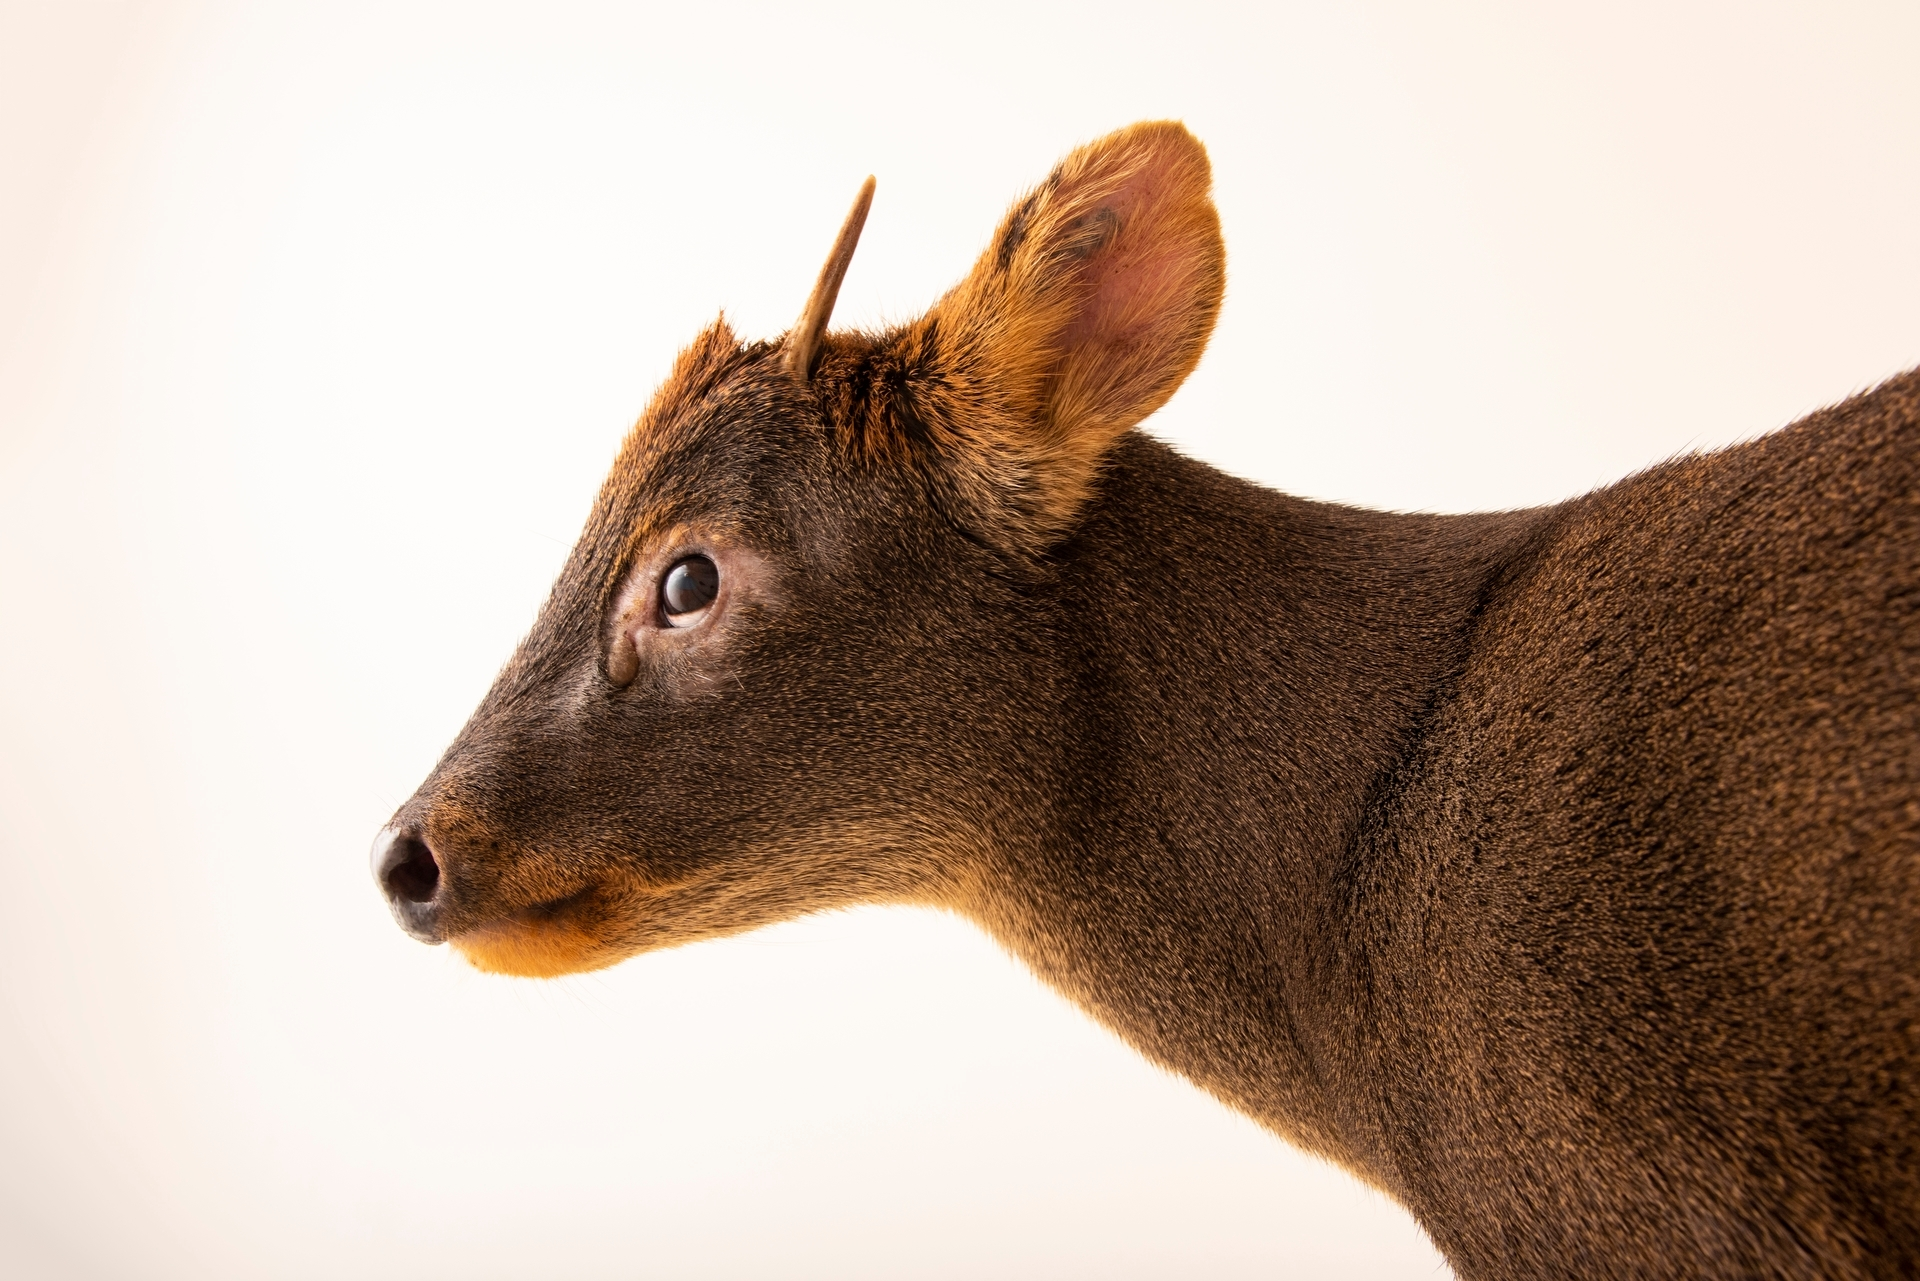 Photo: A male Southern pudu (Pudu puda) at the Dallas World Aquarium.